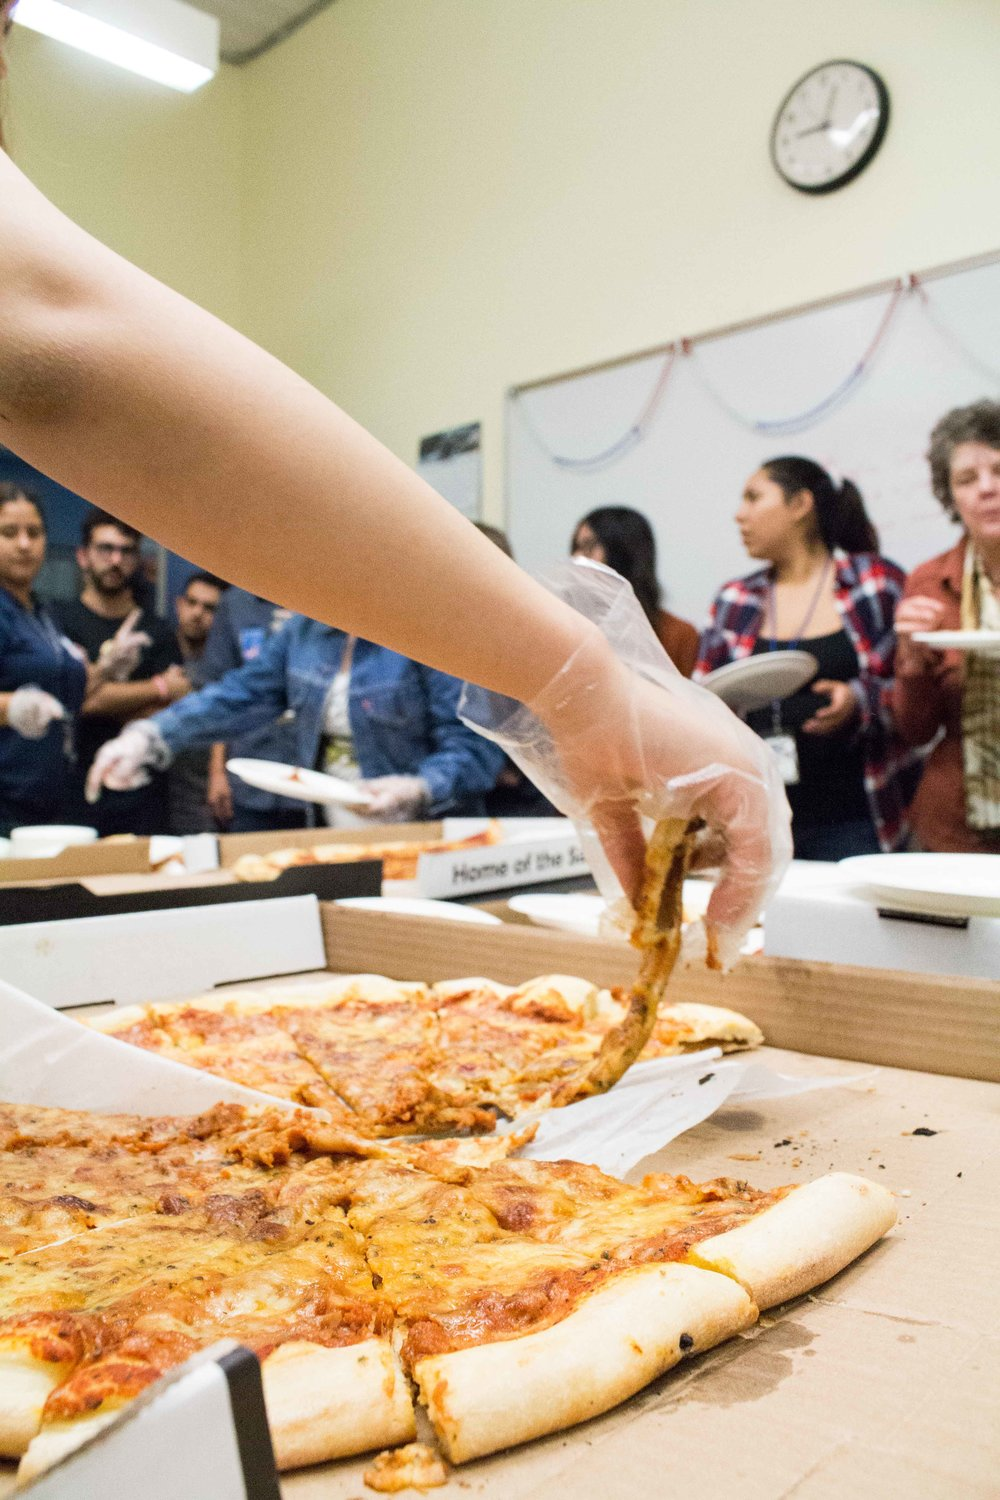 The Associated Students of Santa Monica serve pizza to fellow Santa Monica Students during the 2016 presidential election result viewing party in the Cayton Center in the Santa Monica College campus in Santa Monica, Calif on Tuesday, Nov 9, 2016.